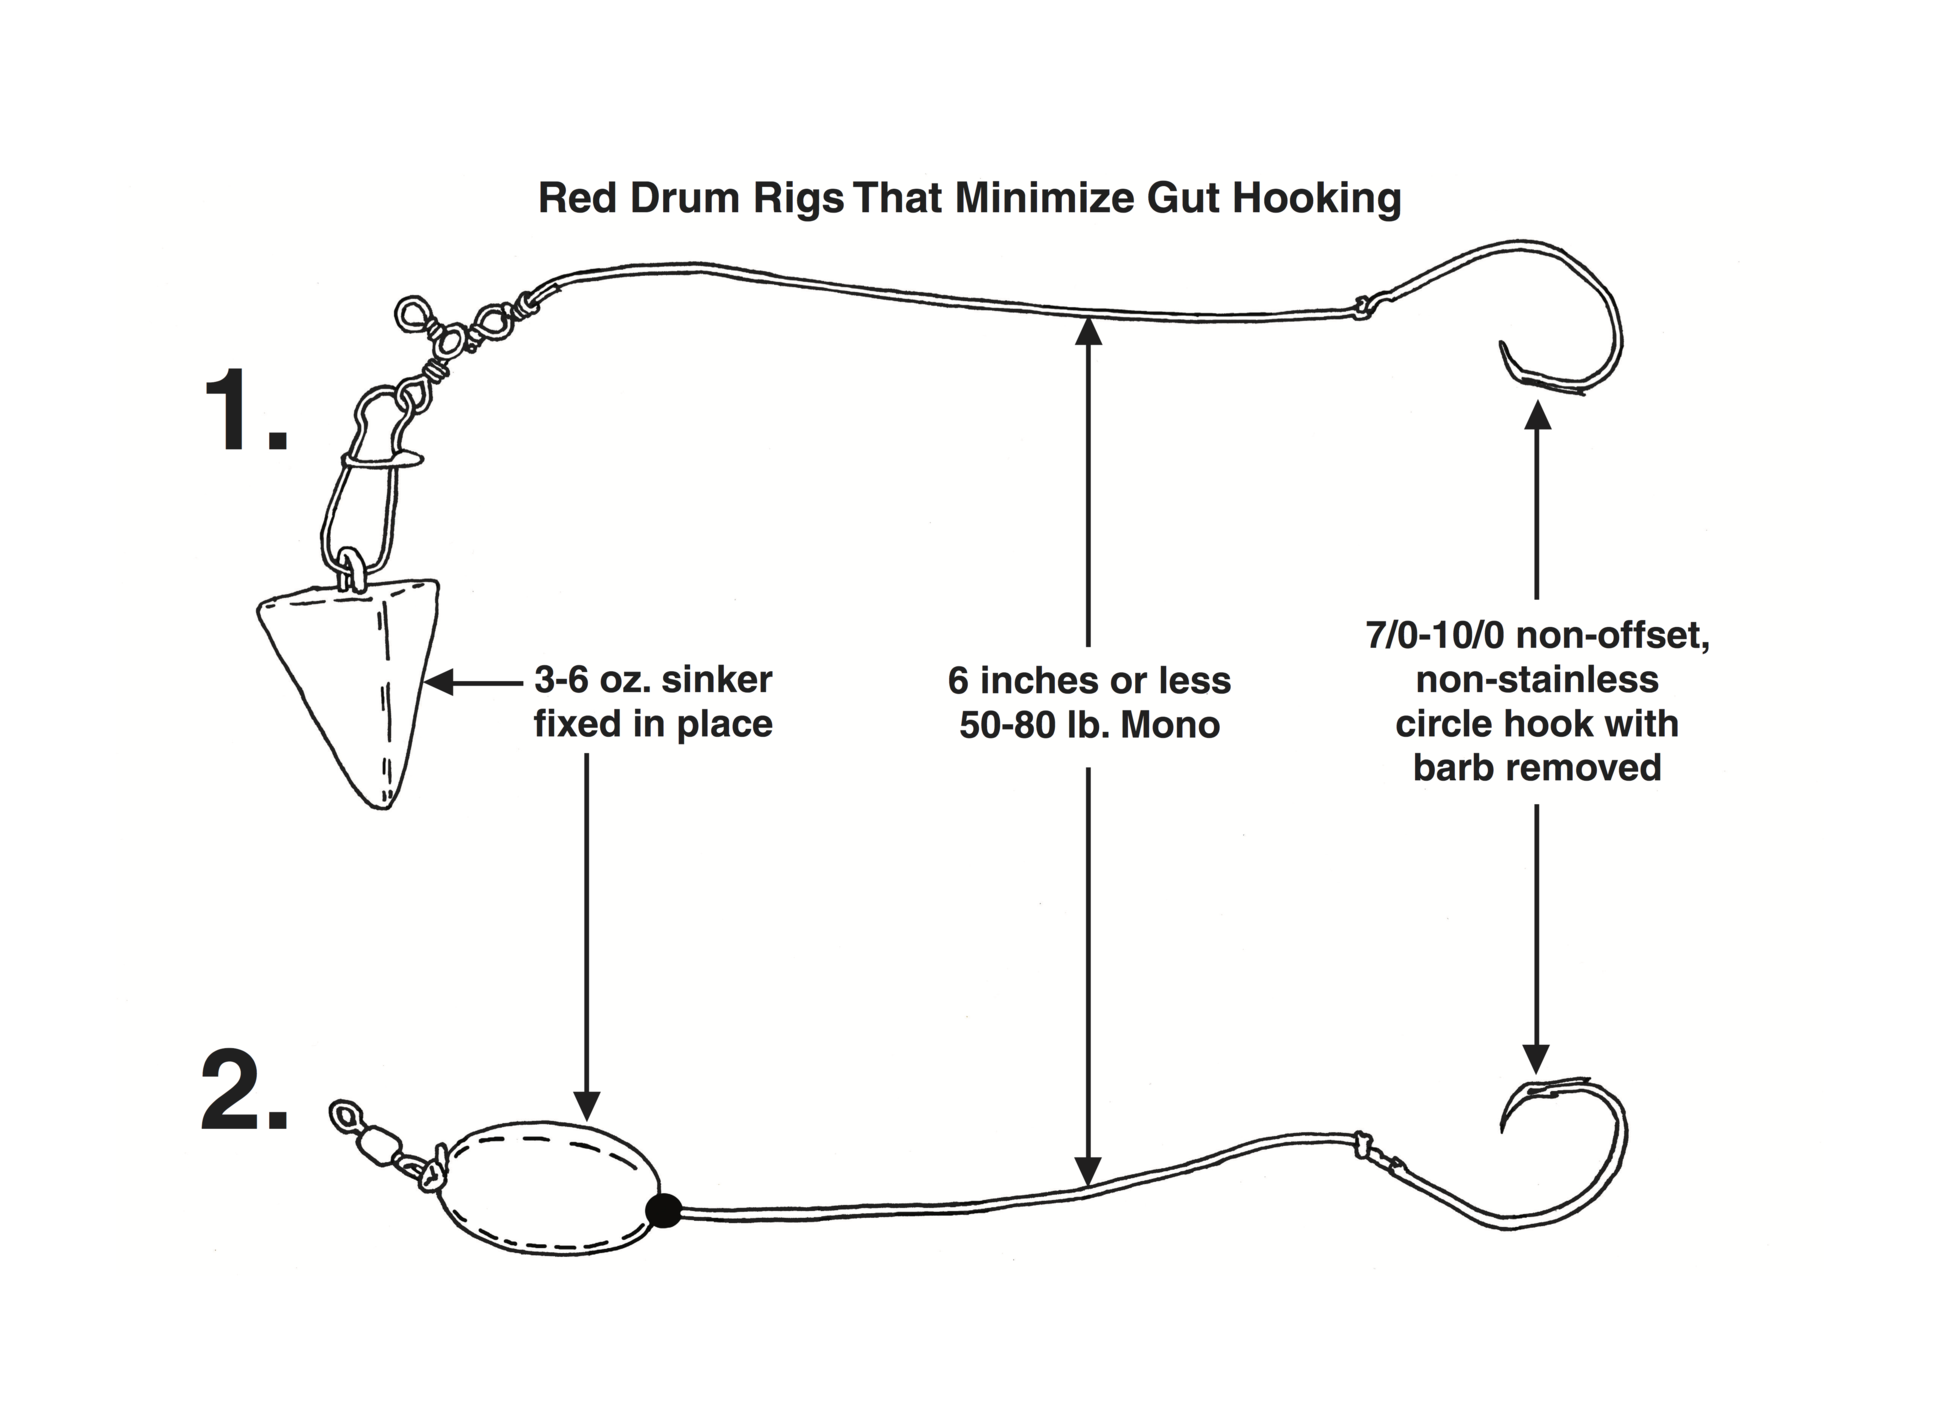 Two variations on the ideal adult red drum rig (Image: Mark Conrardy/SCDNR)